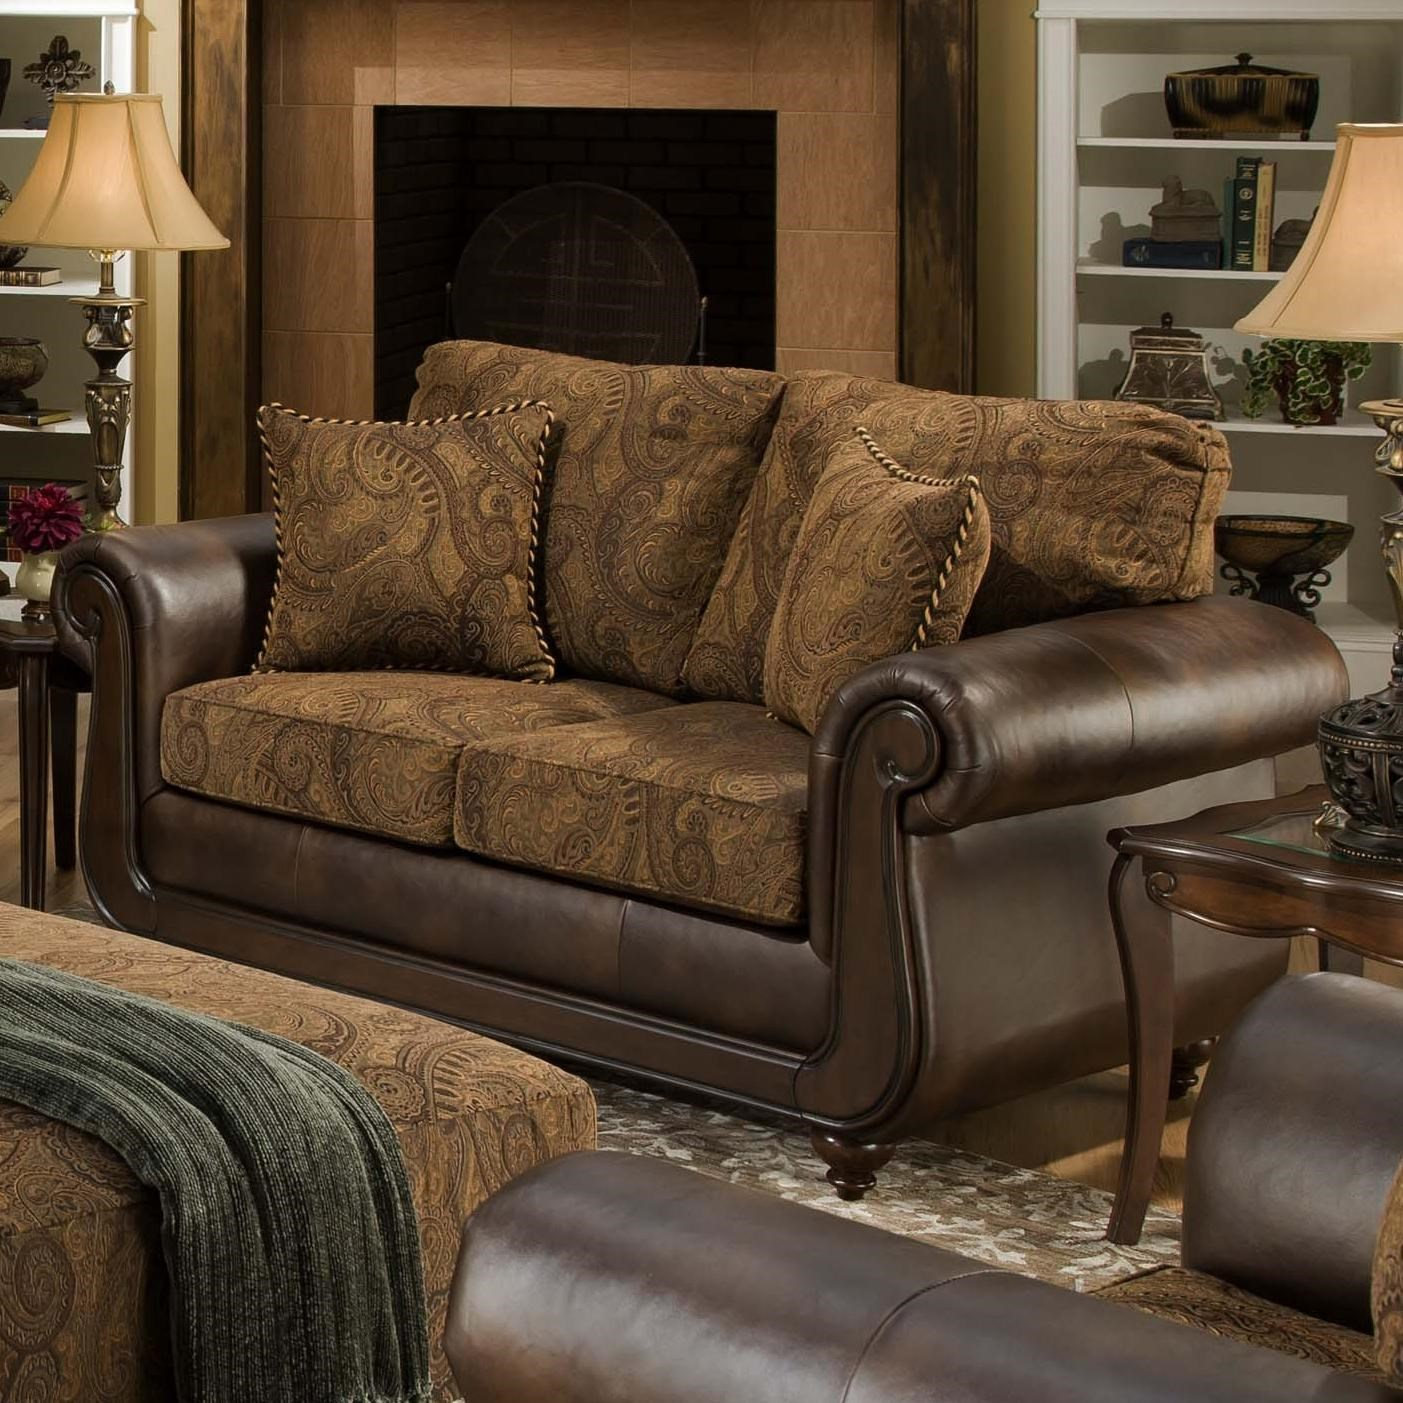 American Furniture 5850 Loveseat with Exposed Wood and